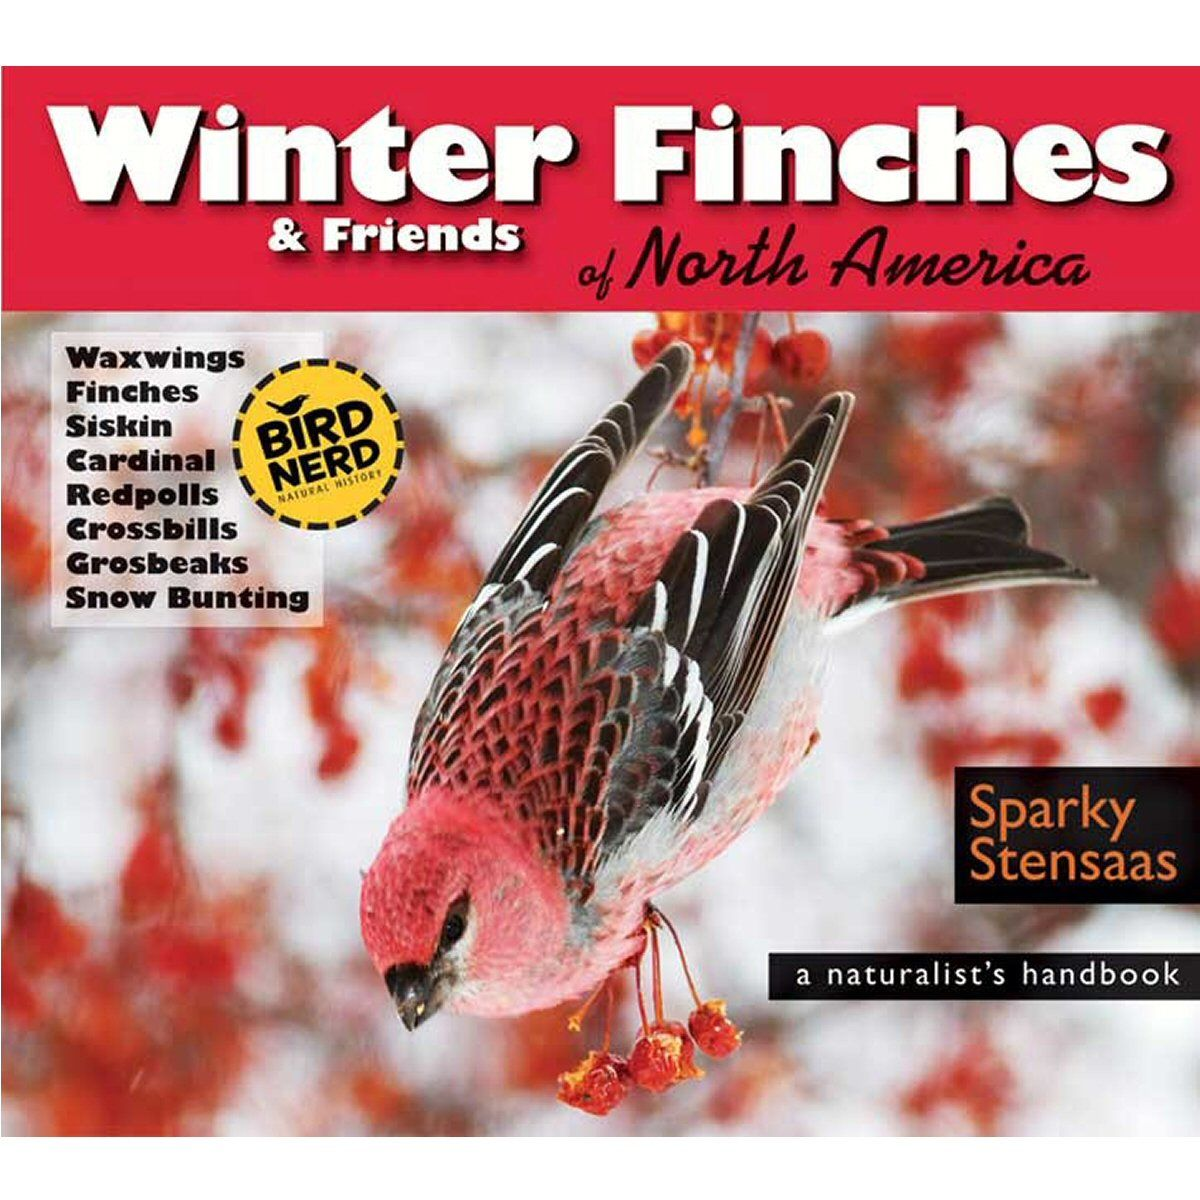 Winter Finches & Friends of North America: A Naturalist's Handbook